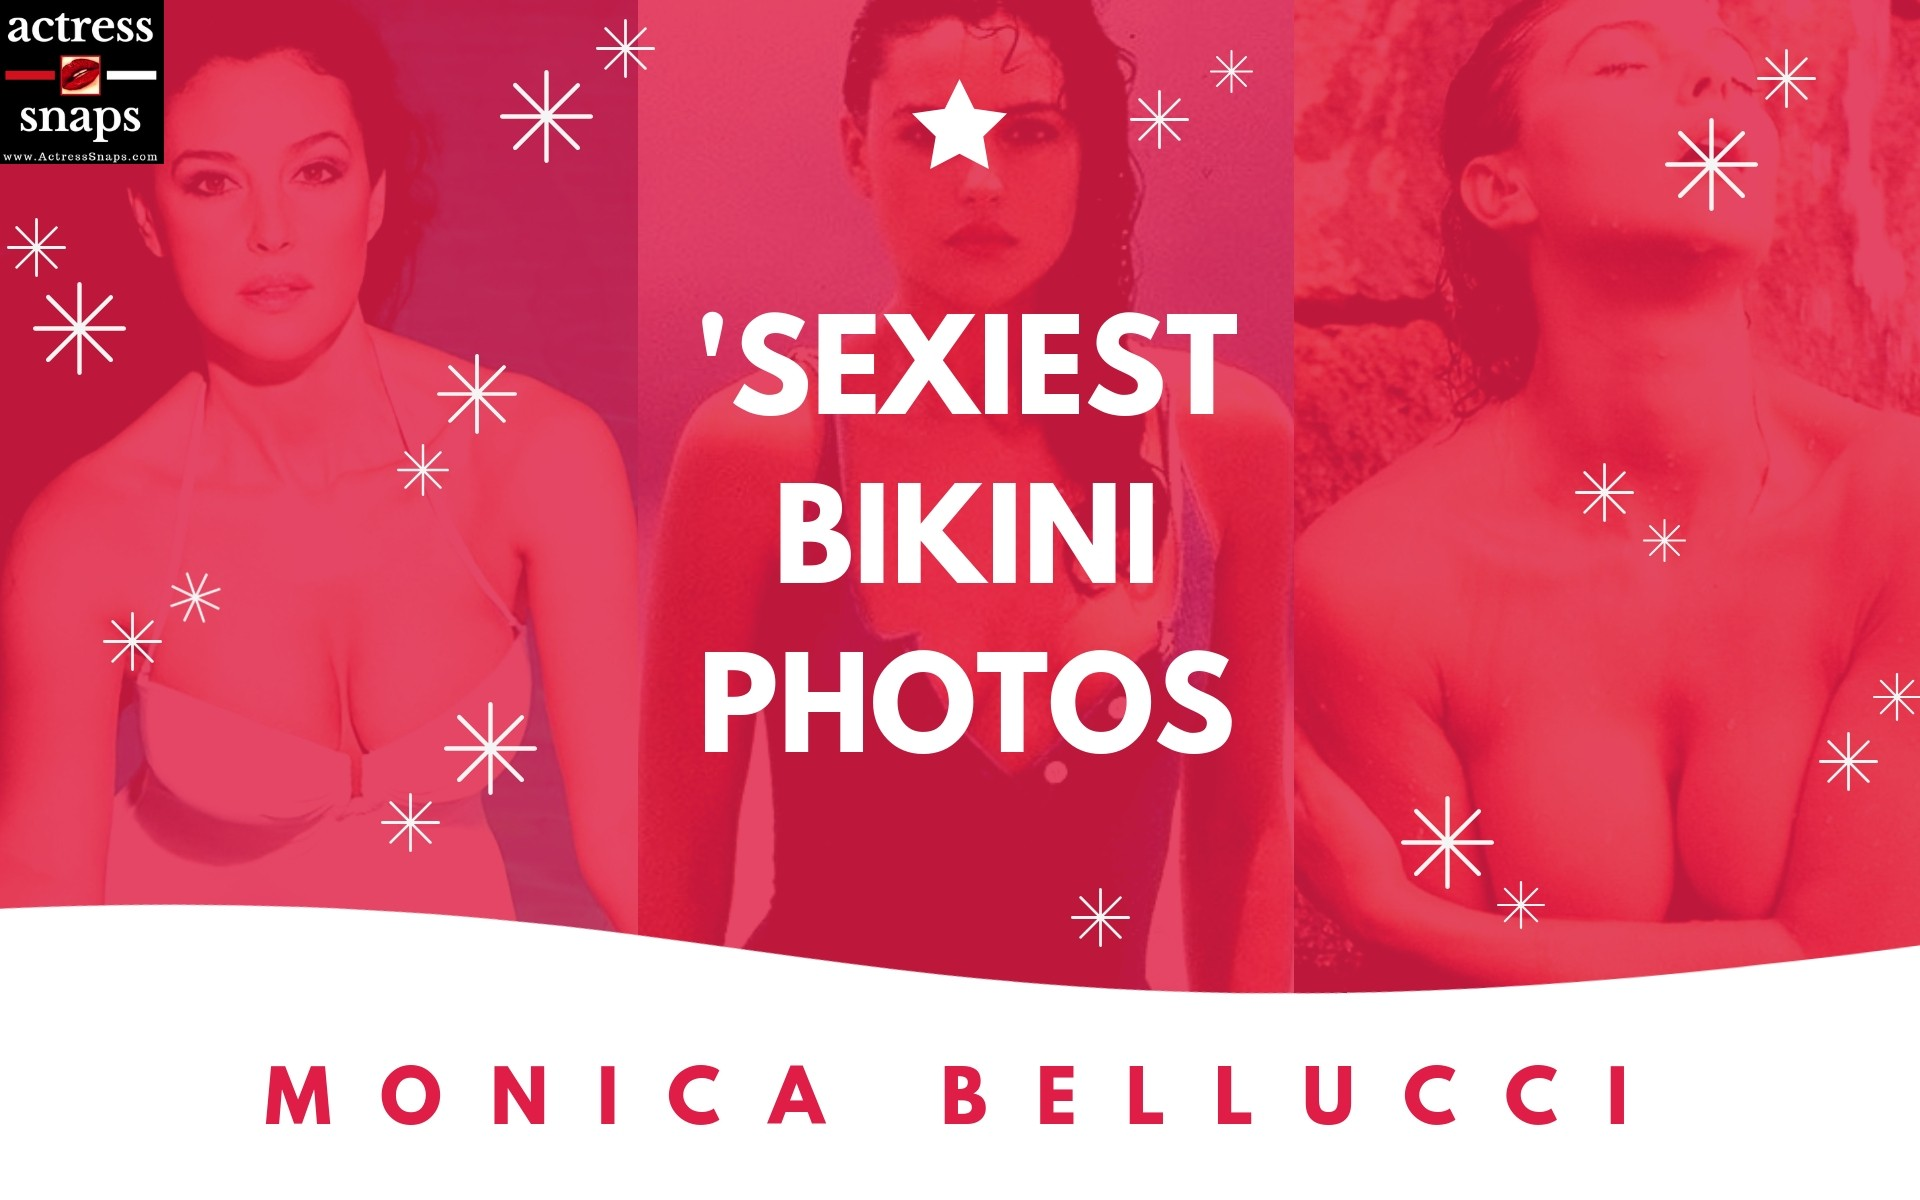 Sexy Monica Belluci Bikini Photos - Sexy Actress Pictures | Hot Actress Pictures - ActressSnaps.com